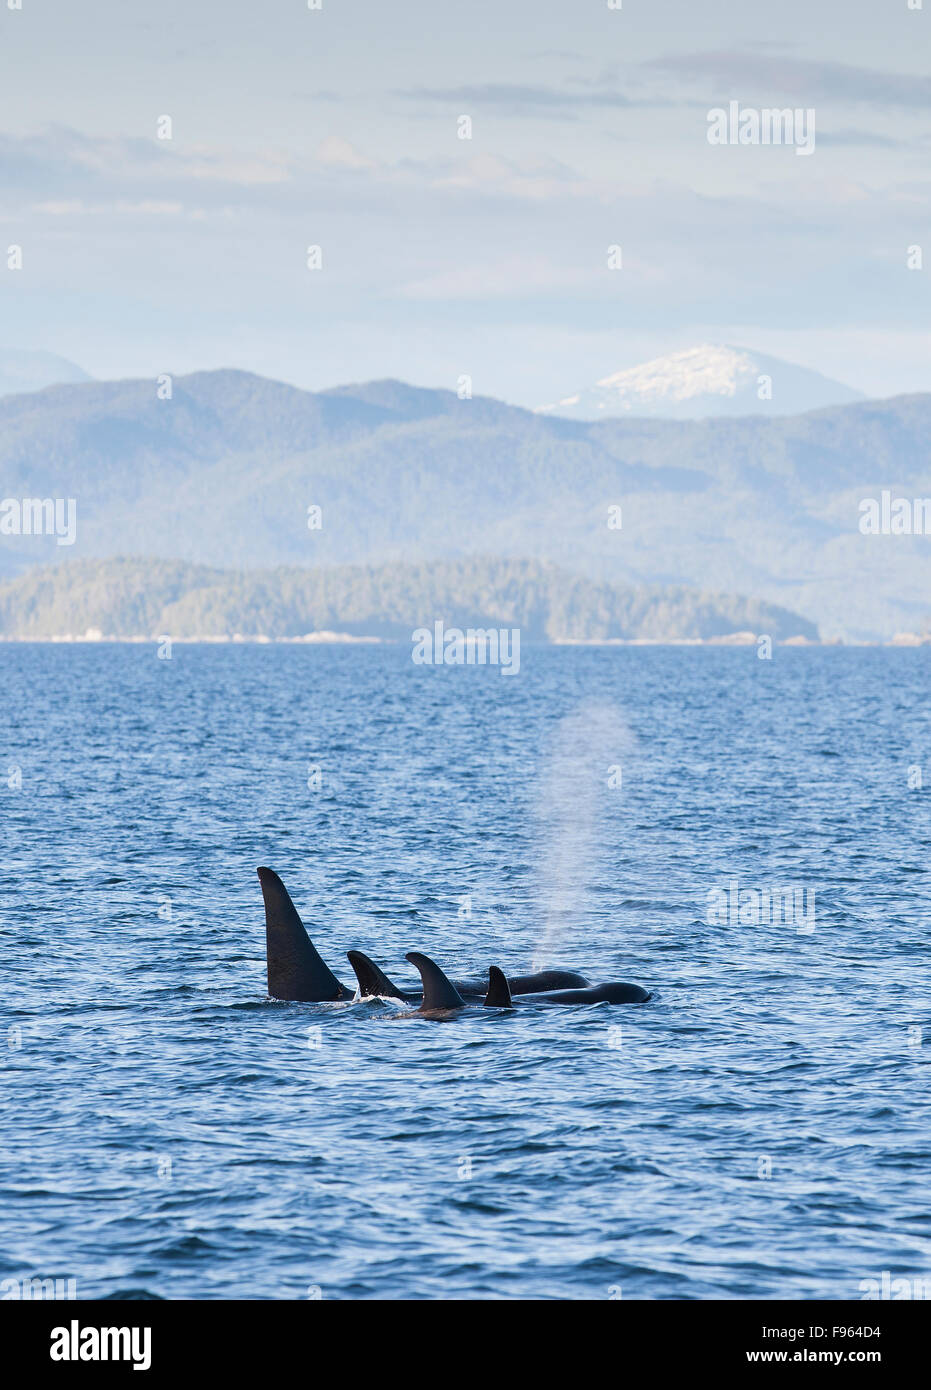 A family or Orca's transits the waters near the MacMullen Group of Islets.  Great Bear Rainforest, Central British - Stock Image